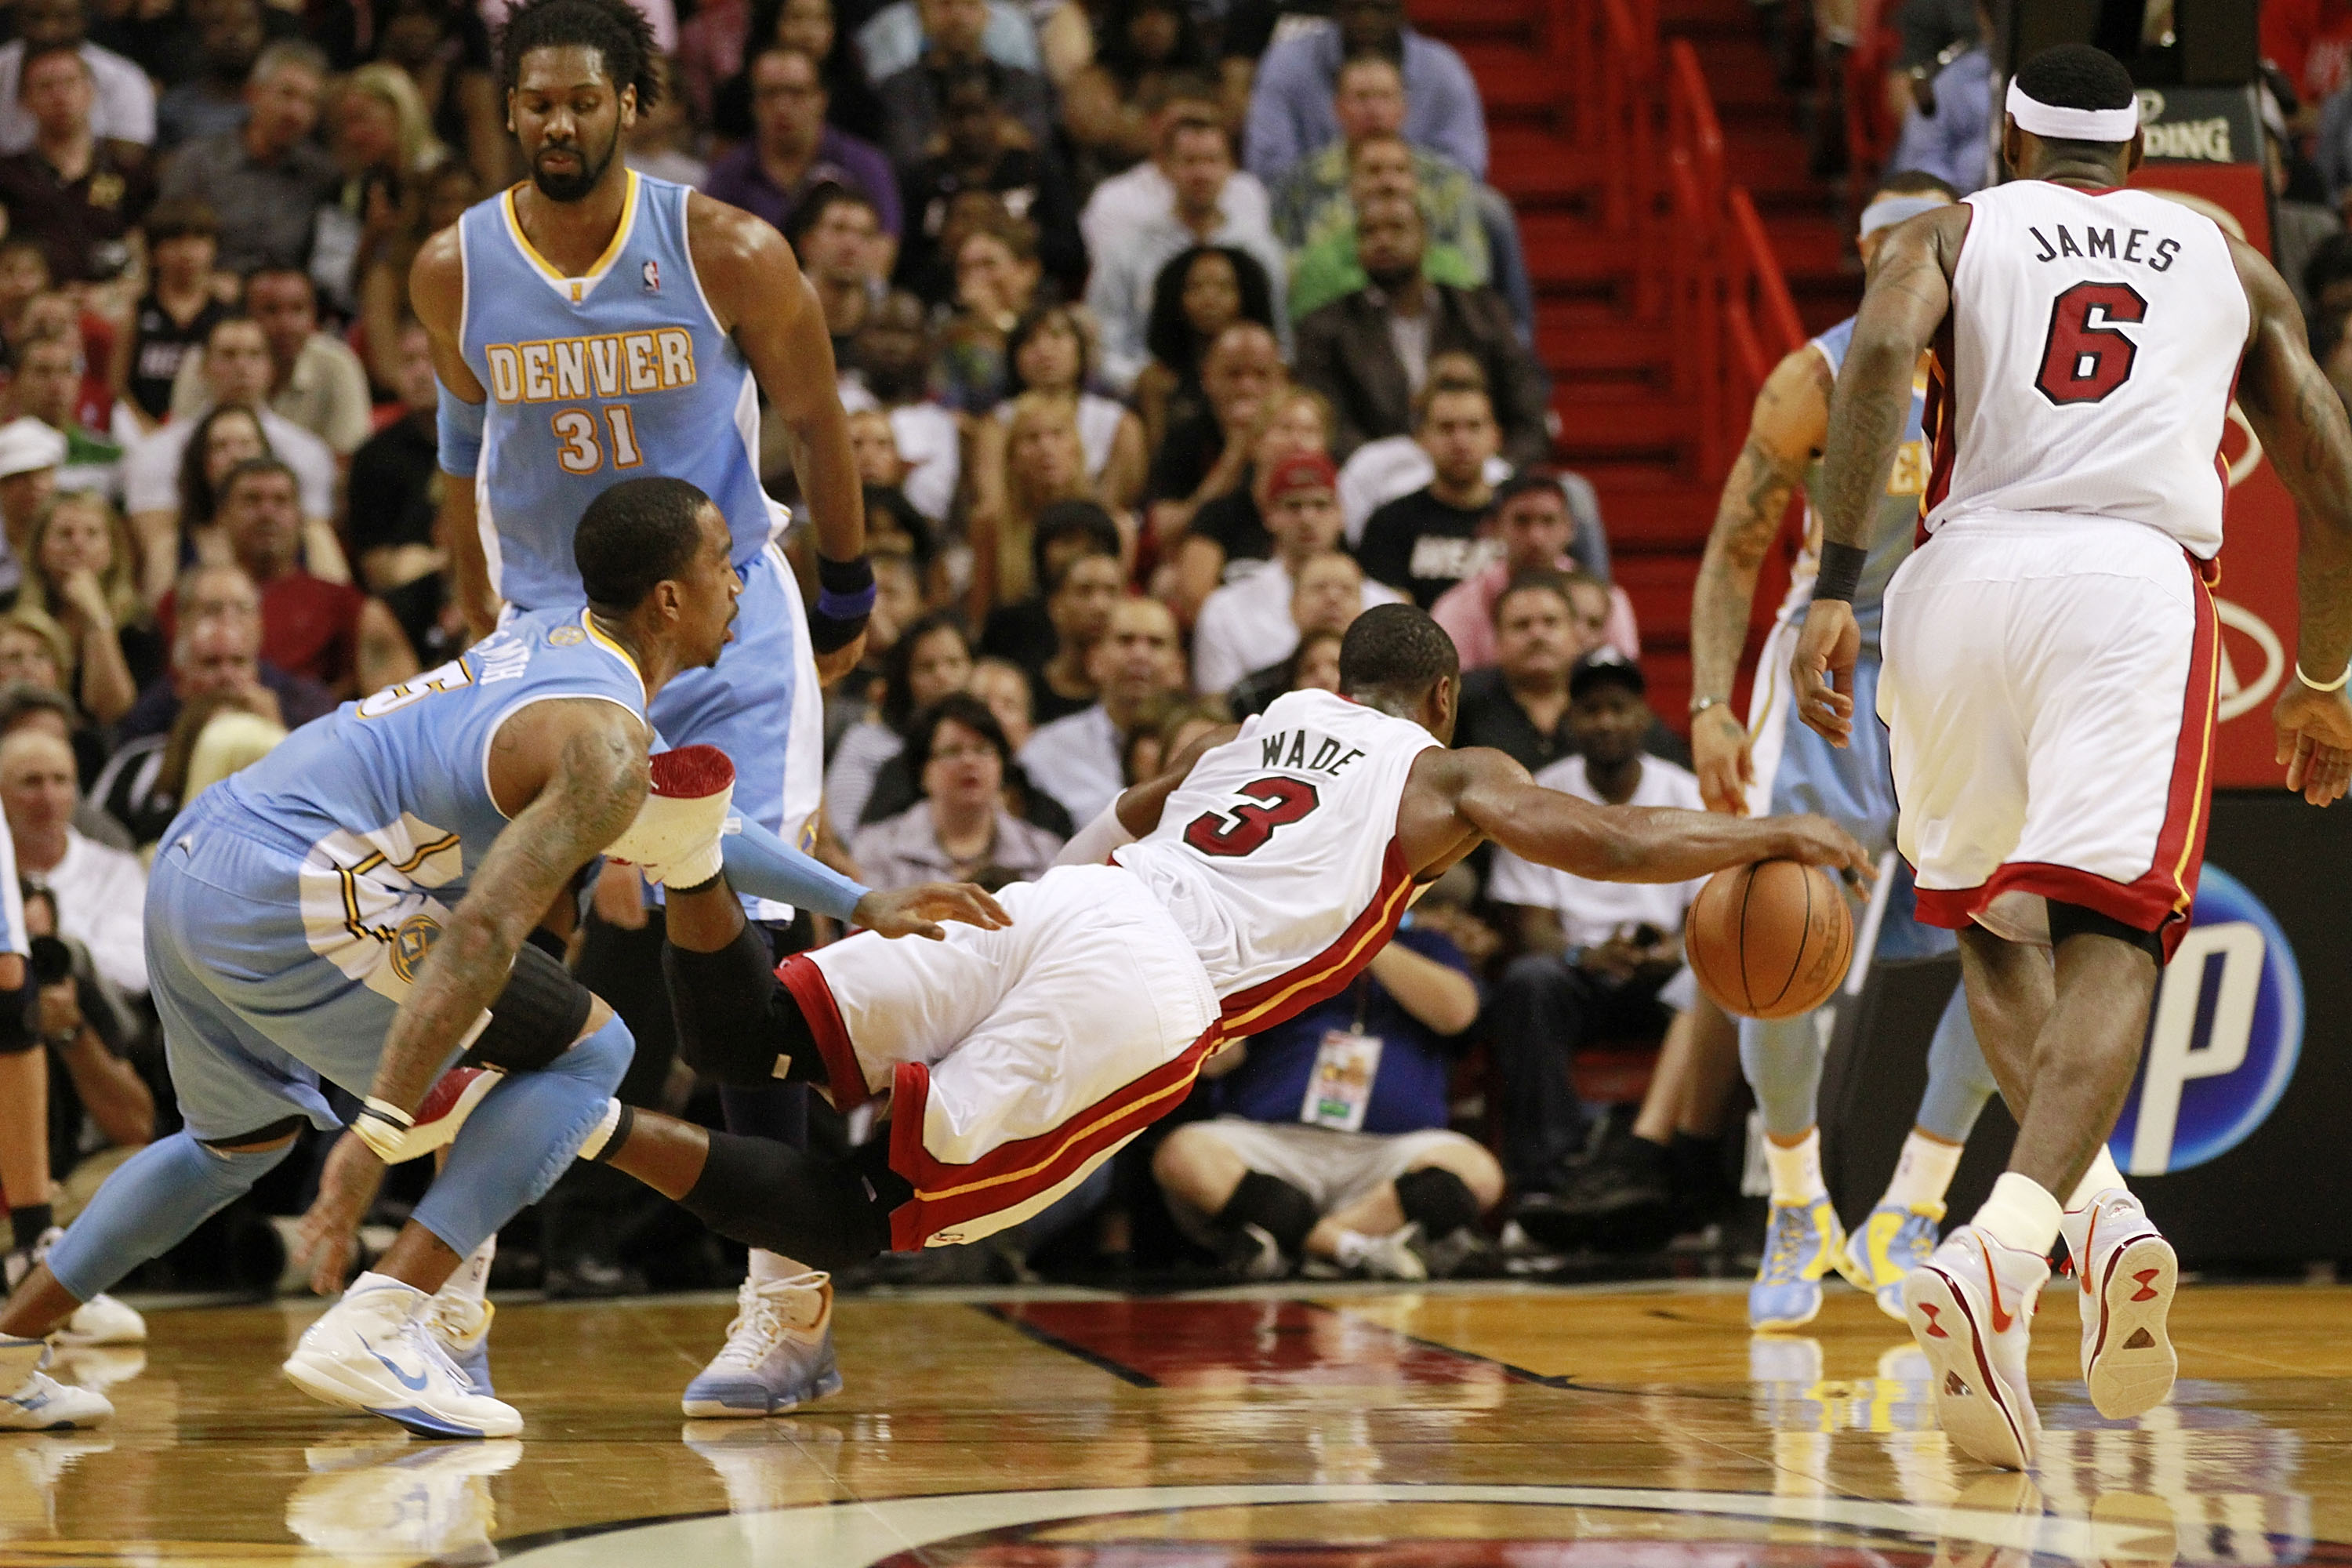 MIAMI, FL - MARCH 19:  Guard Dwyane Wade #3 of the Miami Heat is fouled by guard J.R. Smith (R) of the Denver Nuggets at American Airlines Arena on March 19, 2011 in Miami, Florida. The Heat defeated the Nuggets 103-98. NOTE TO USER: User expressly acknow